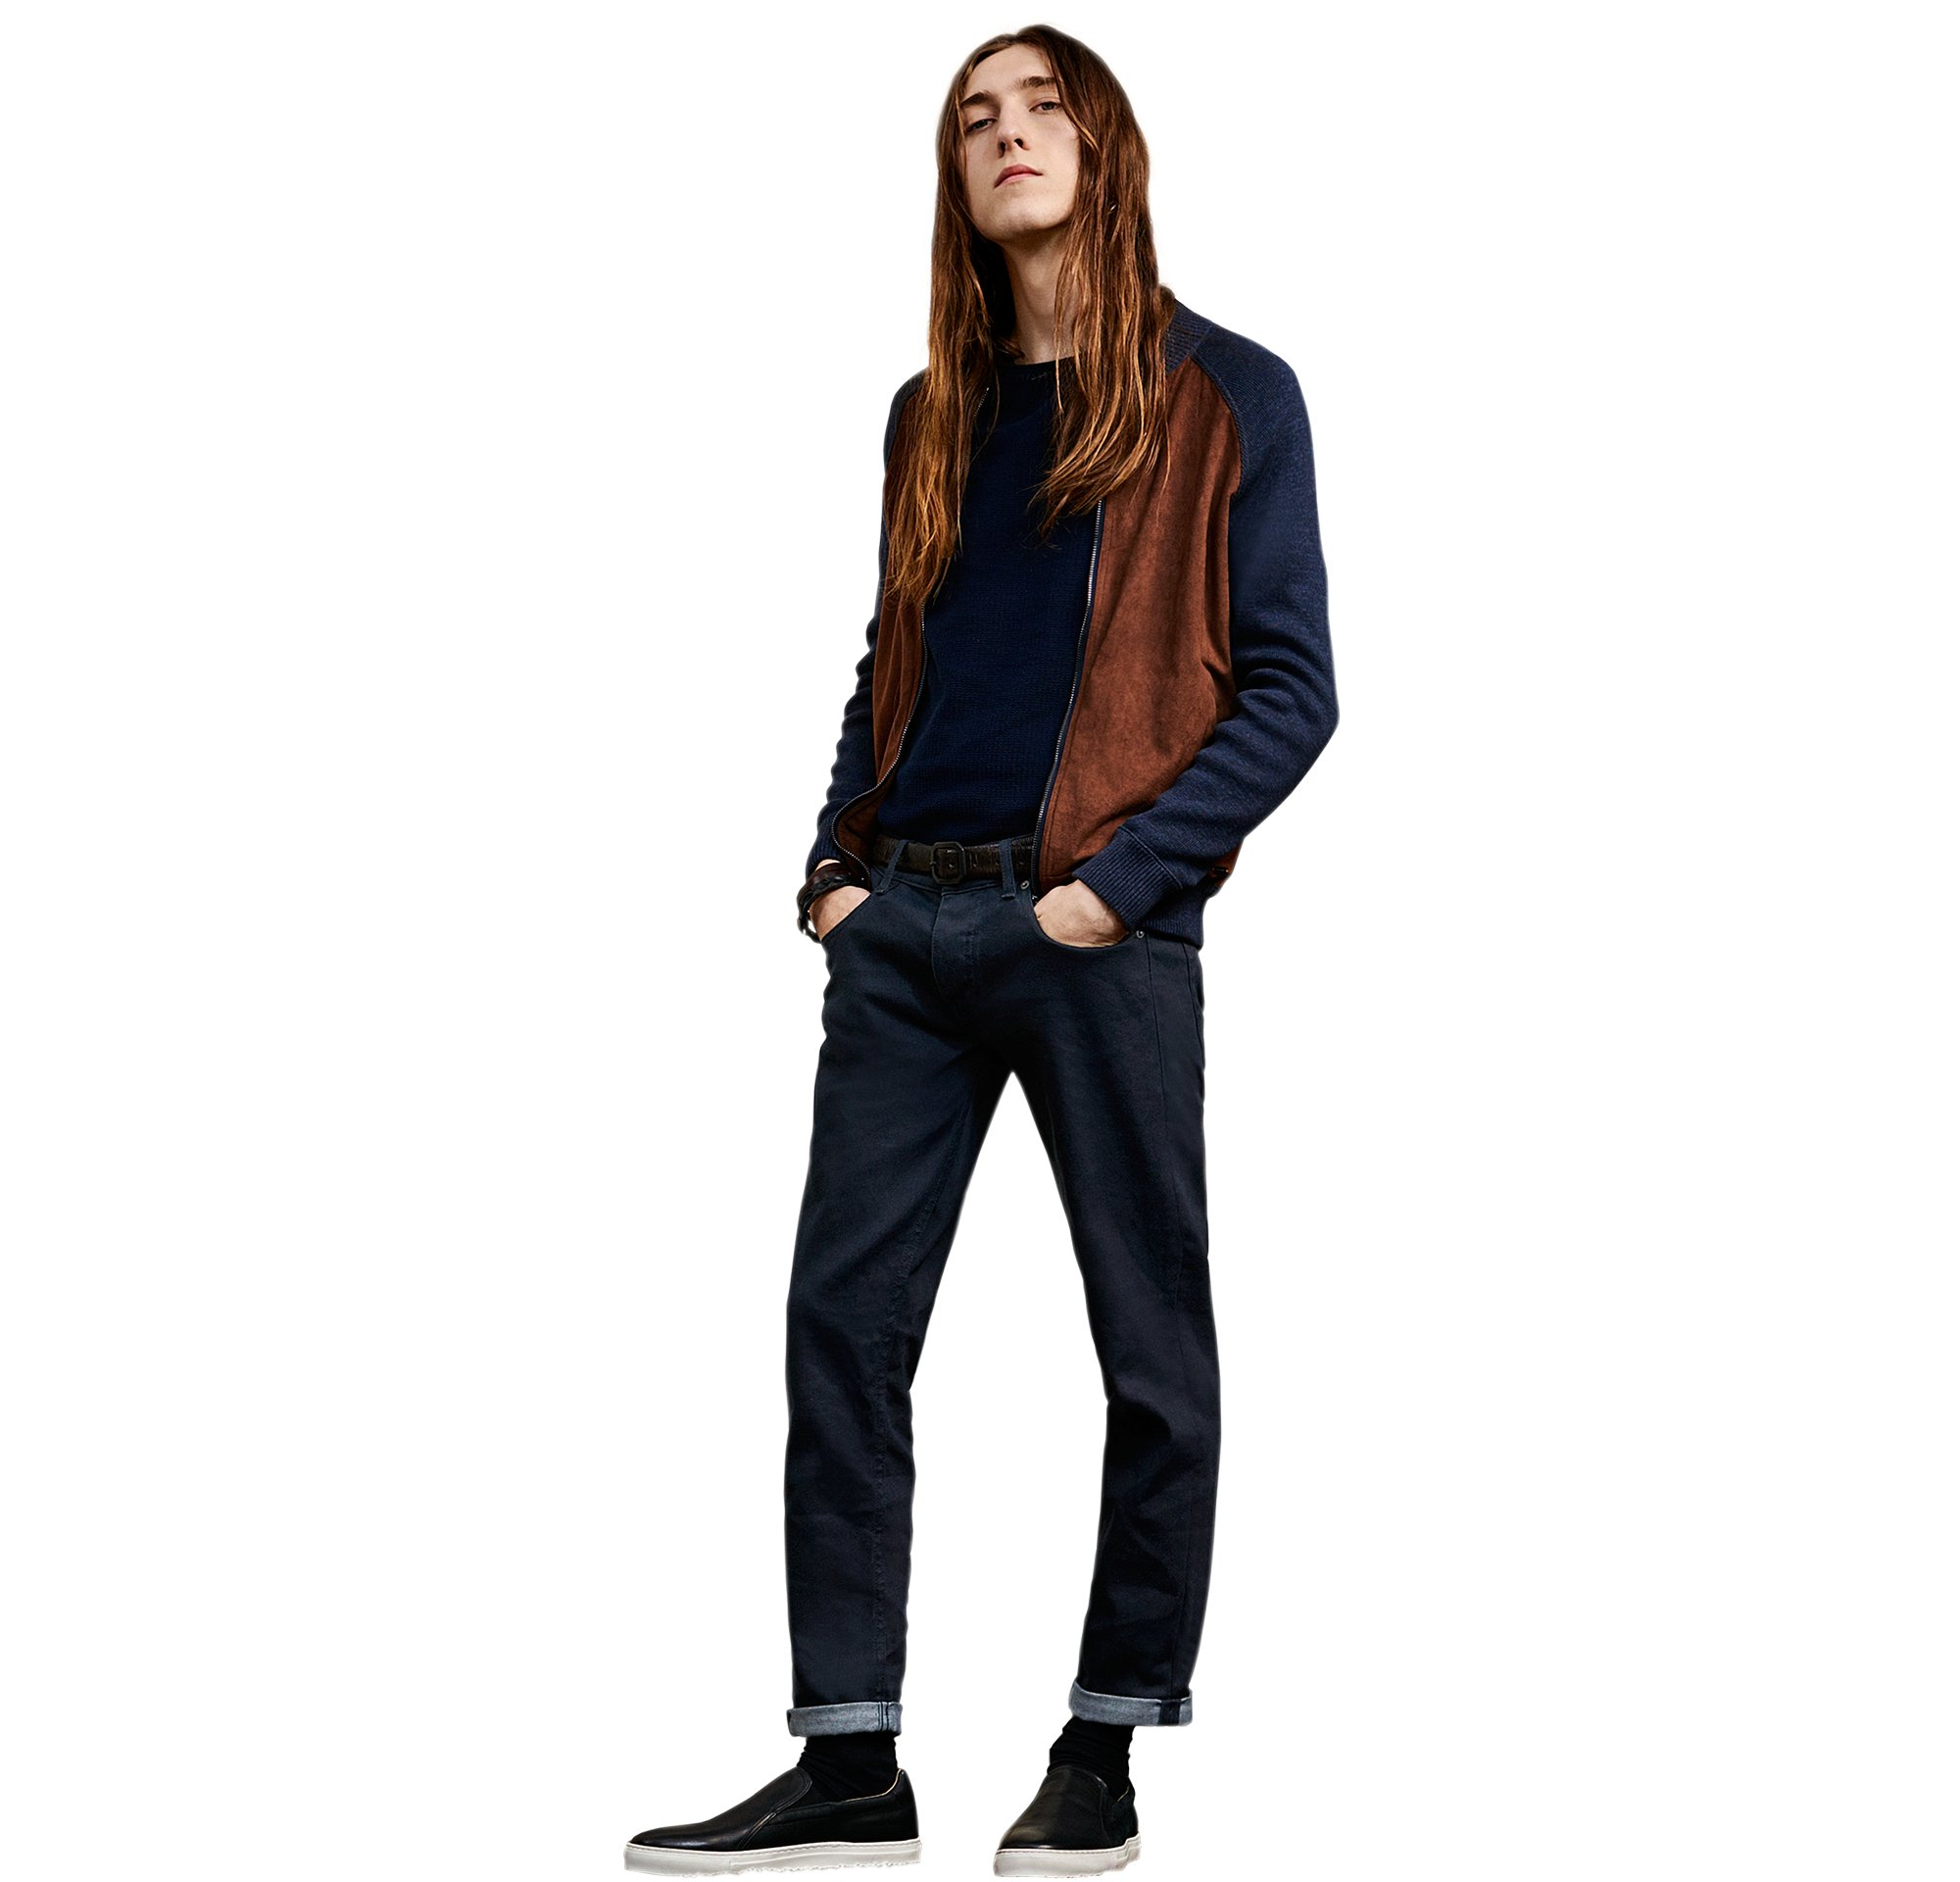 Blue knitwear and jeans with shoes and belt by BOSS Orange